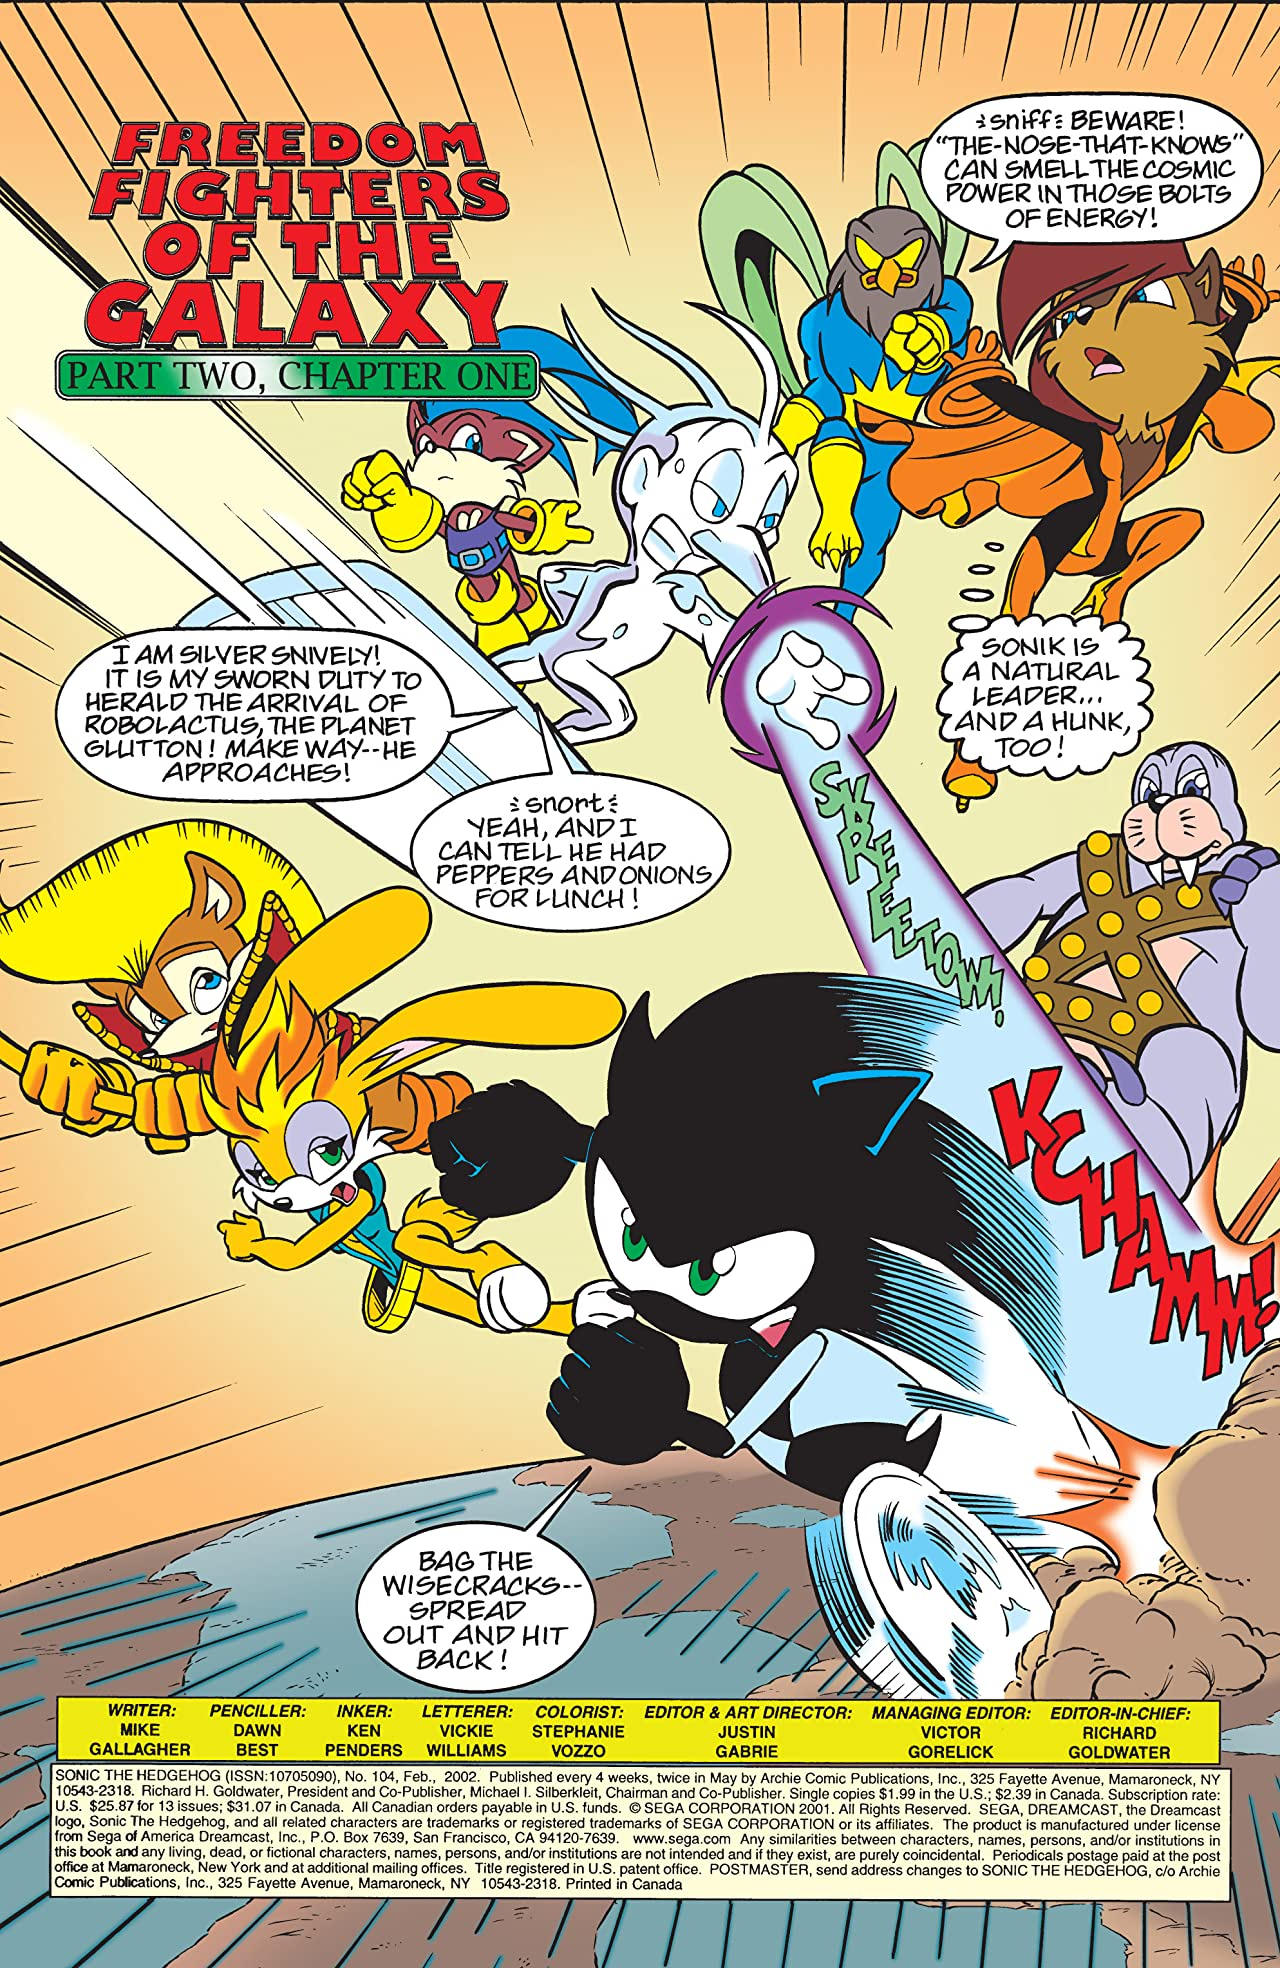 Sonic the Hedgehog #104